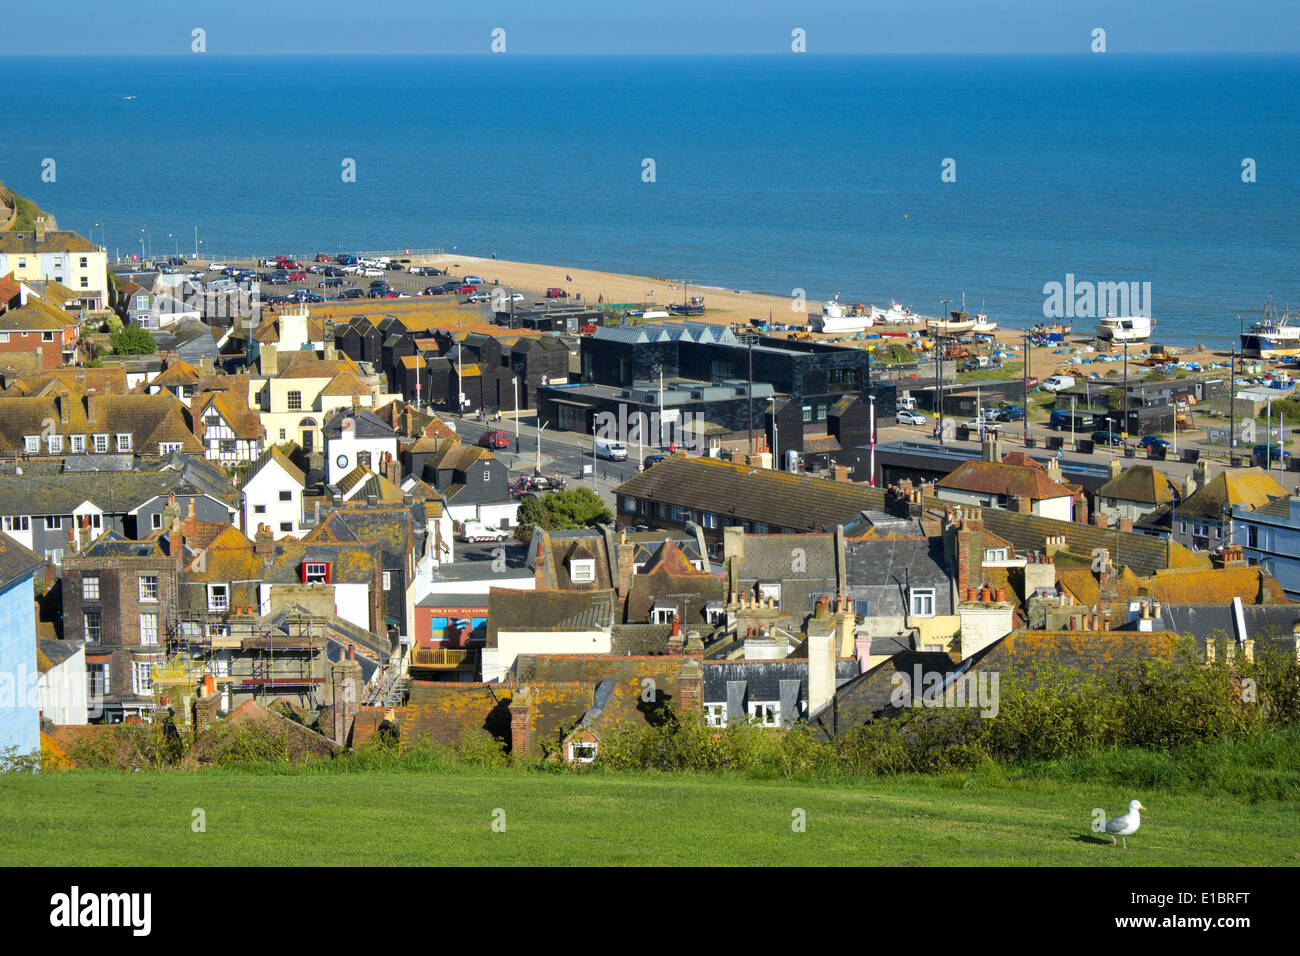 View over Hastings Old Town to the Jerwood Art Gallery on the beach, East Sussex, GB, UK - Stock Image